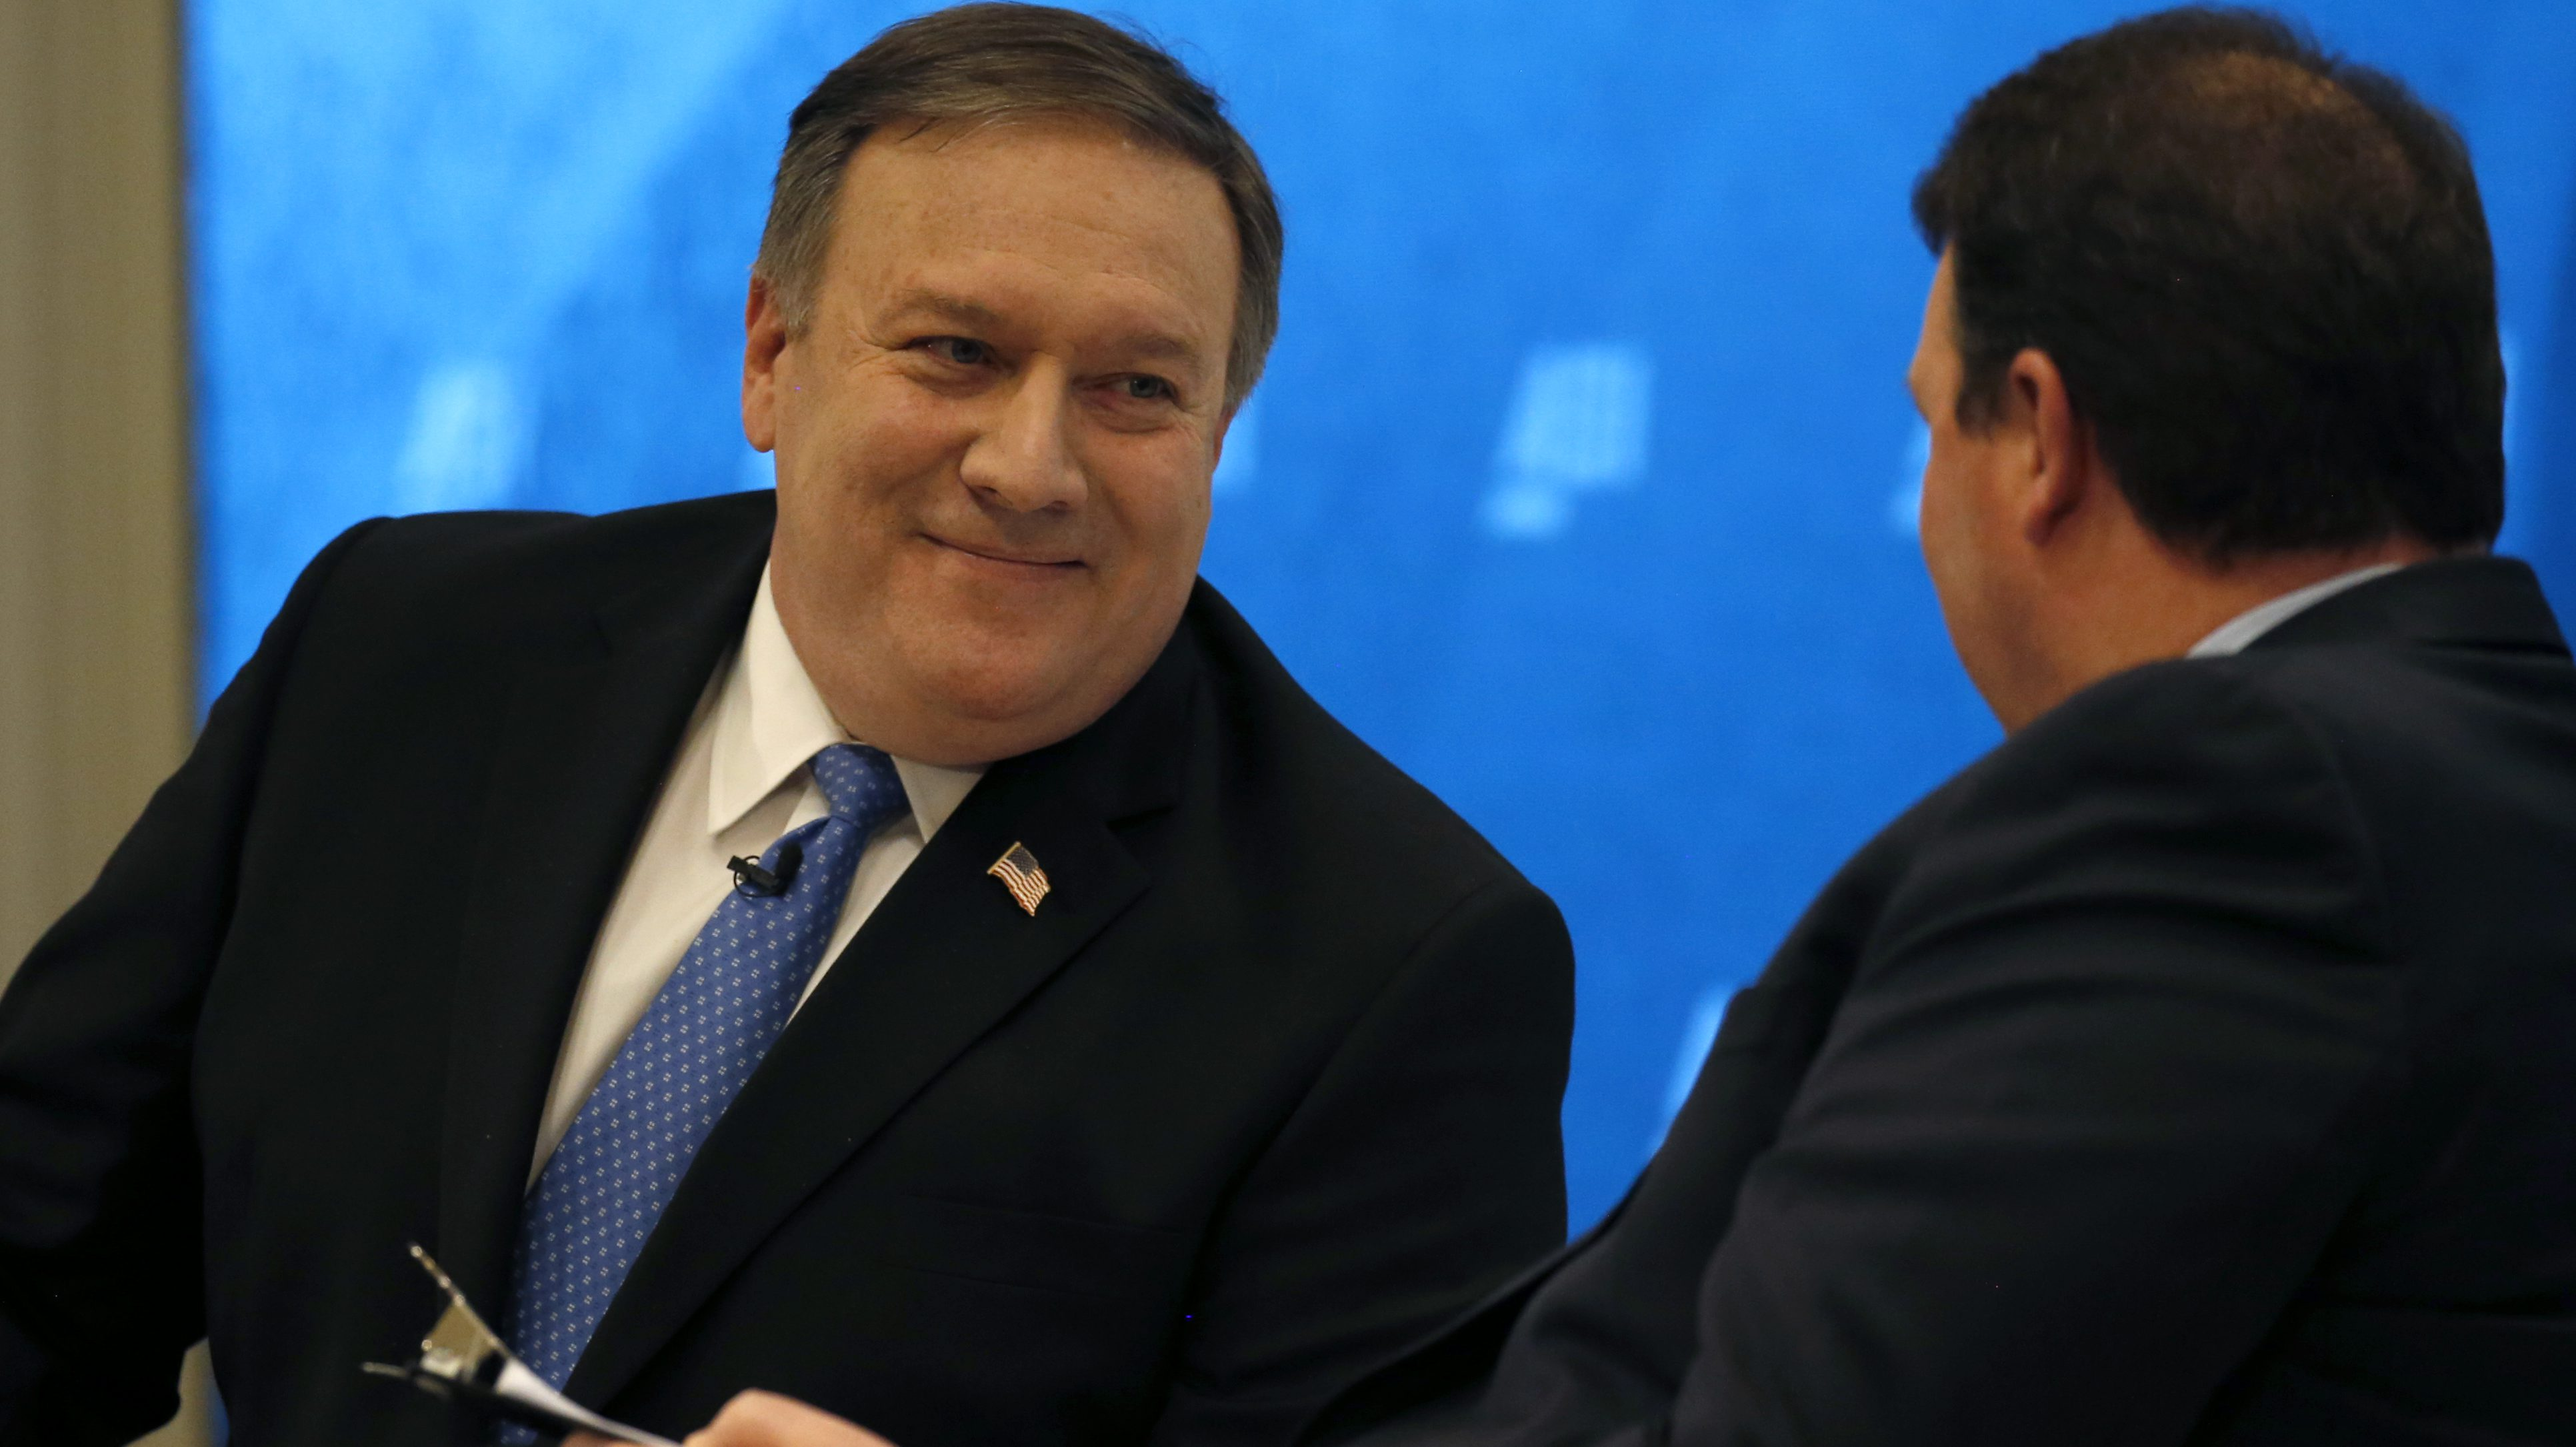 """CIA Director Mike Pompeo responds to interview questions from Marc A. Thiessen during """"Intelligence Beyond 2018,"""" a forum hosted by the American Enterprise Institute for Public Policy Research in Washington, U.S., January 23, 2018. REUTERS/Leah Millis - HP1EE1N1GZXOM"""